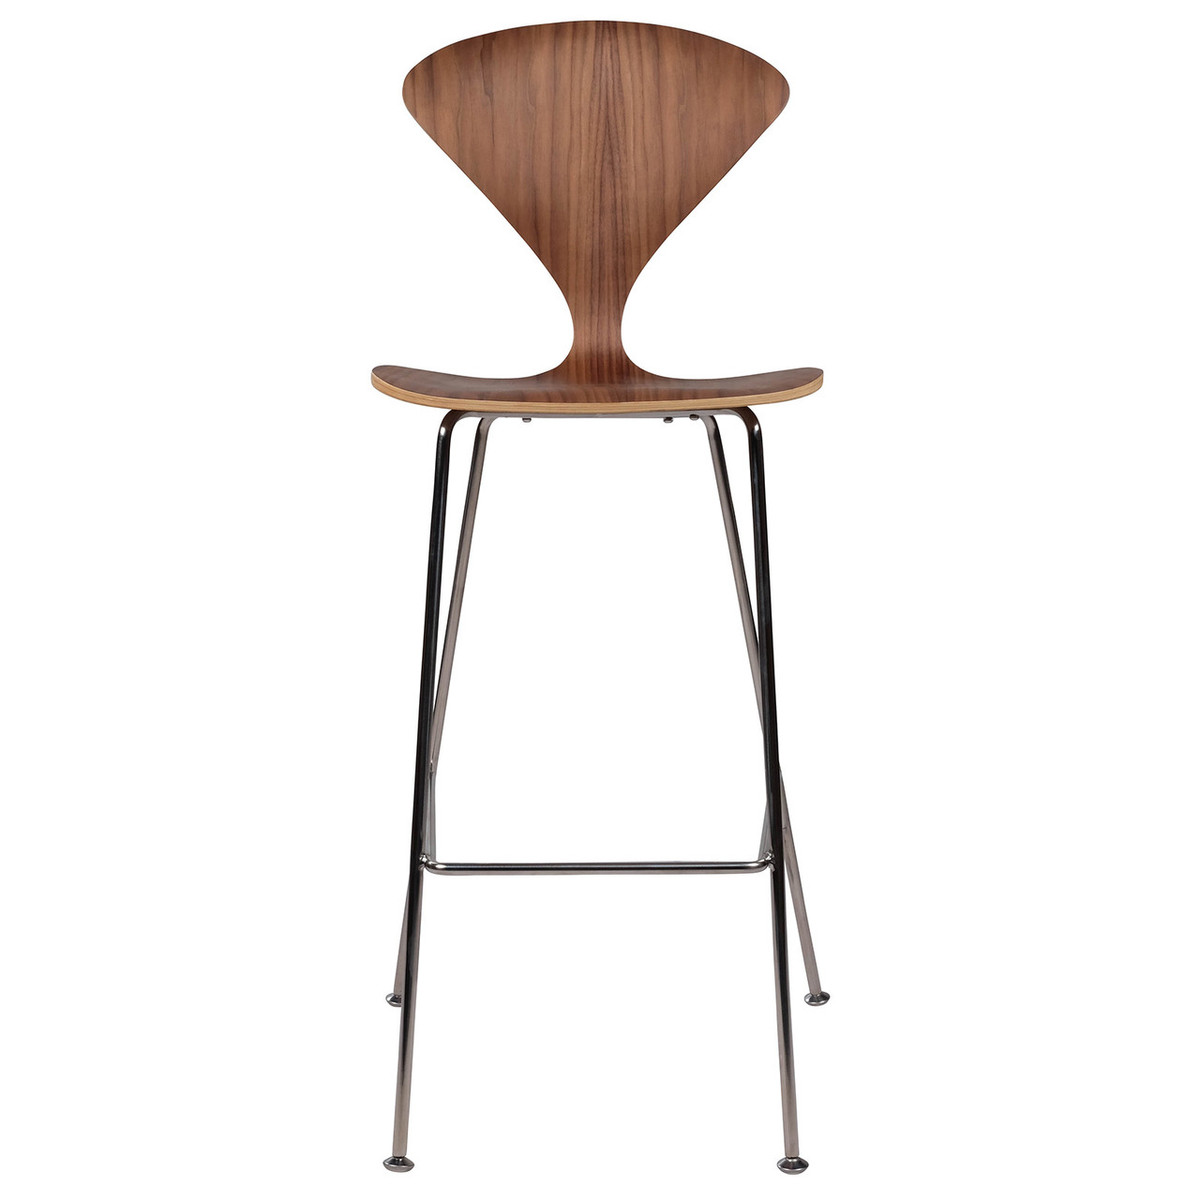 Sensational Cherner Counter Stool With Metal Legs Gmtry Best Dining Table And Chair Ideas Images Gmtryco